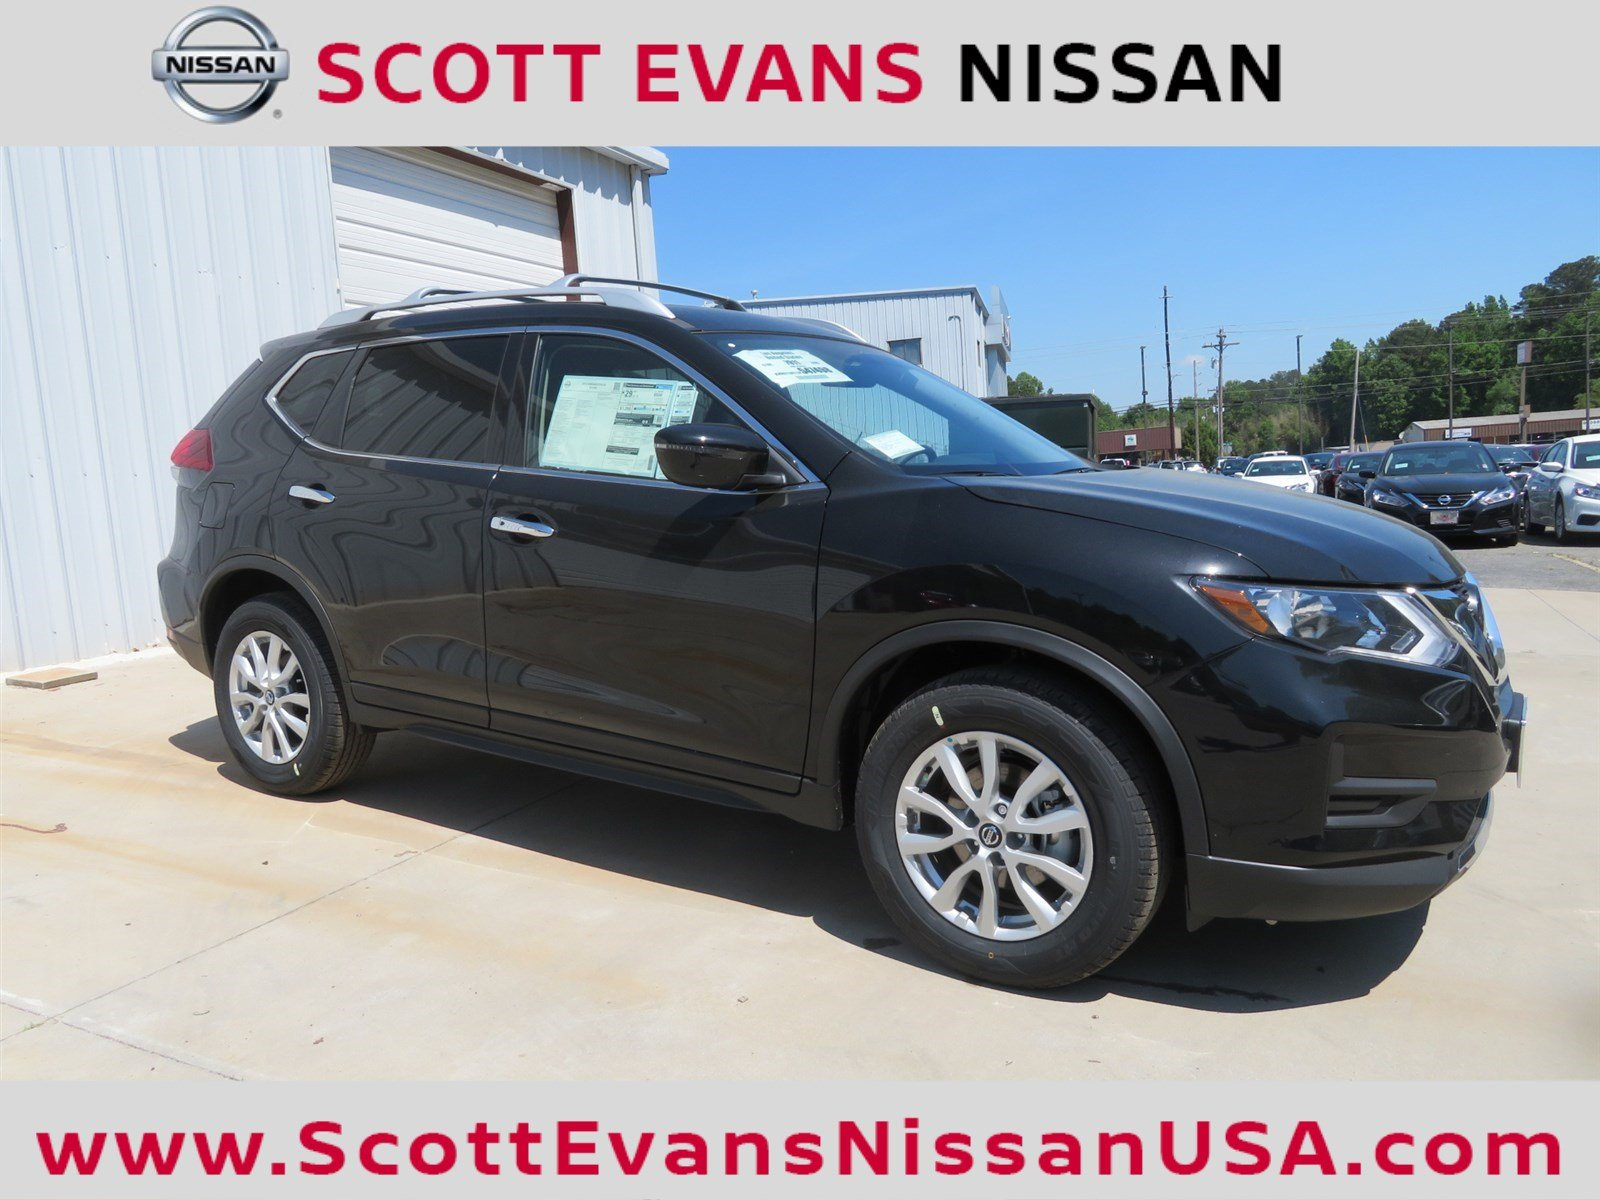 nissan havasu city new utility in rouge inventory fwd sv sport rogue lake